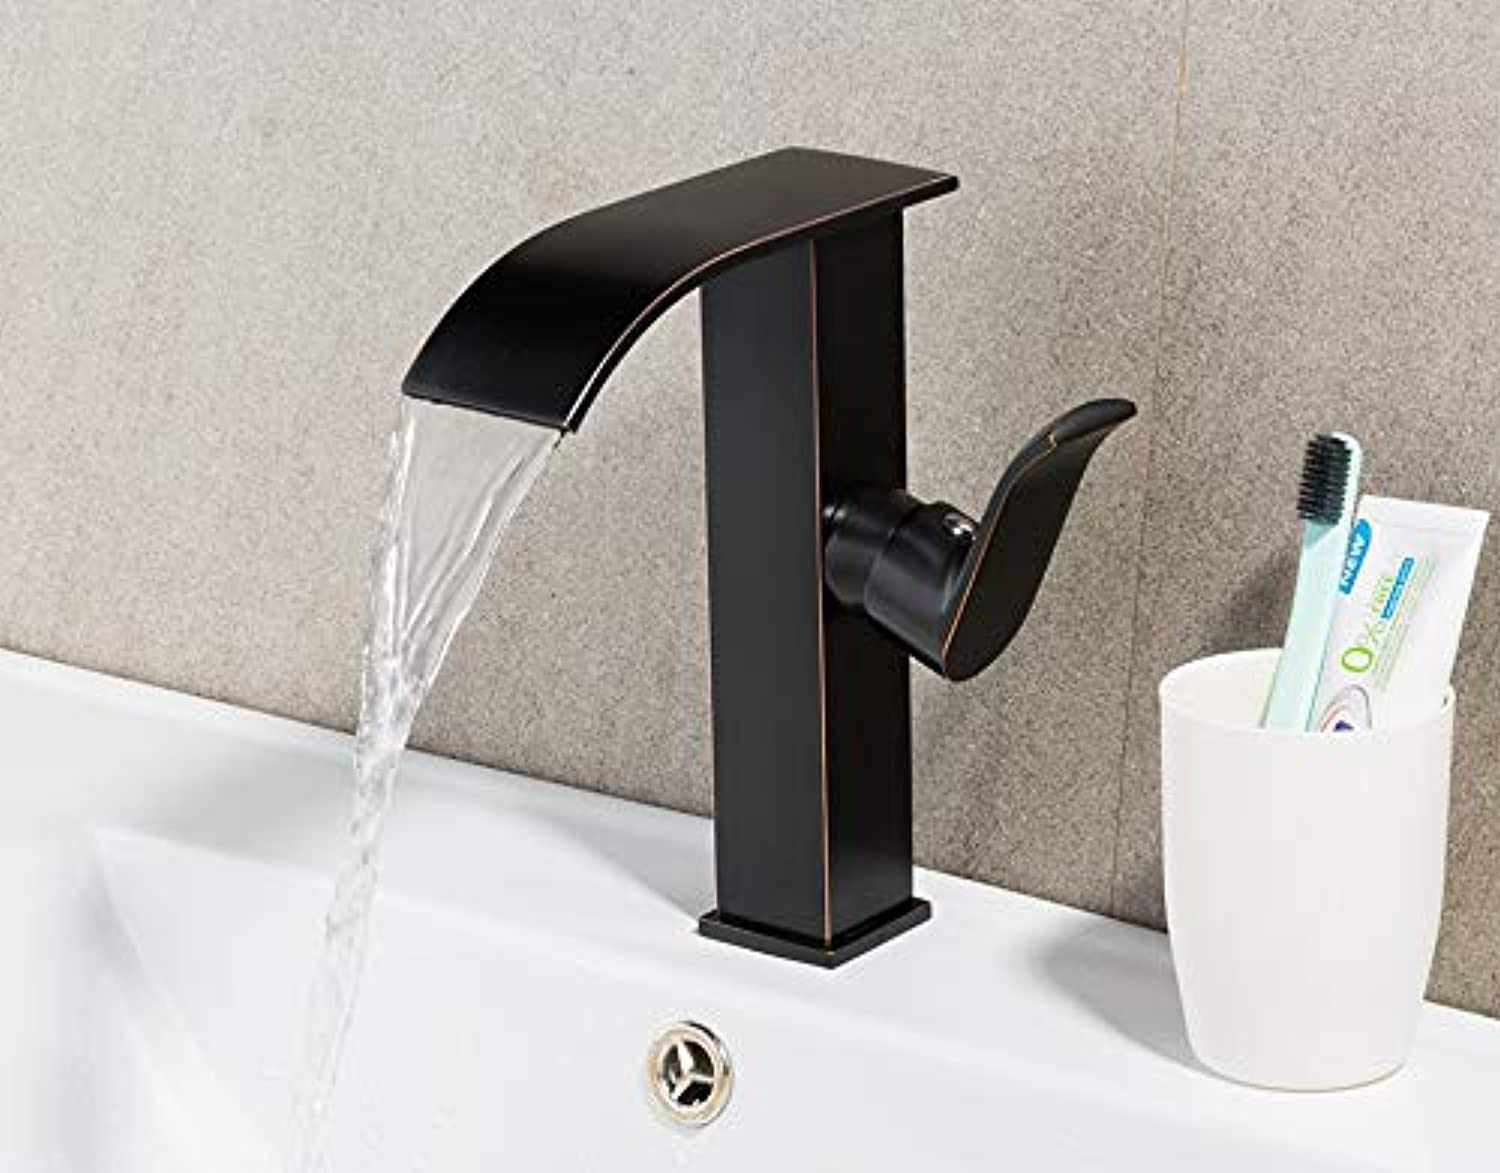 Brass Single Handle Black Basin Faucet Deck Mounted Countertop Bathroom Basin Sink Mixers Hot and Cold Water Tap